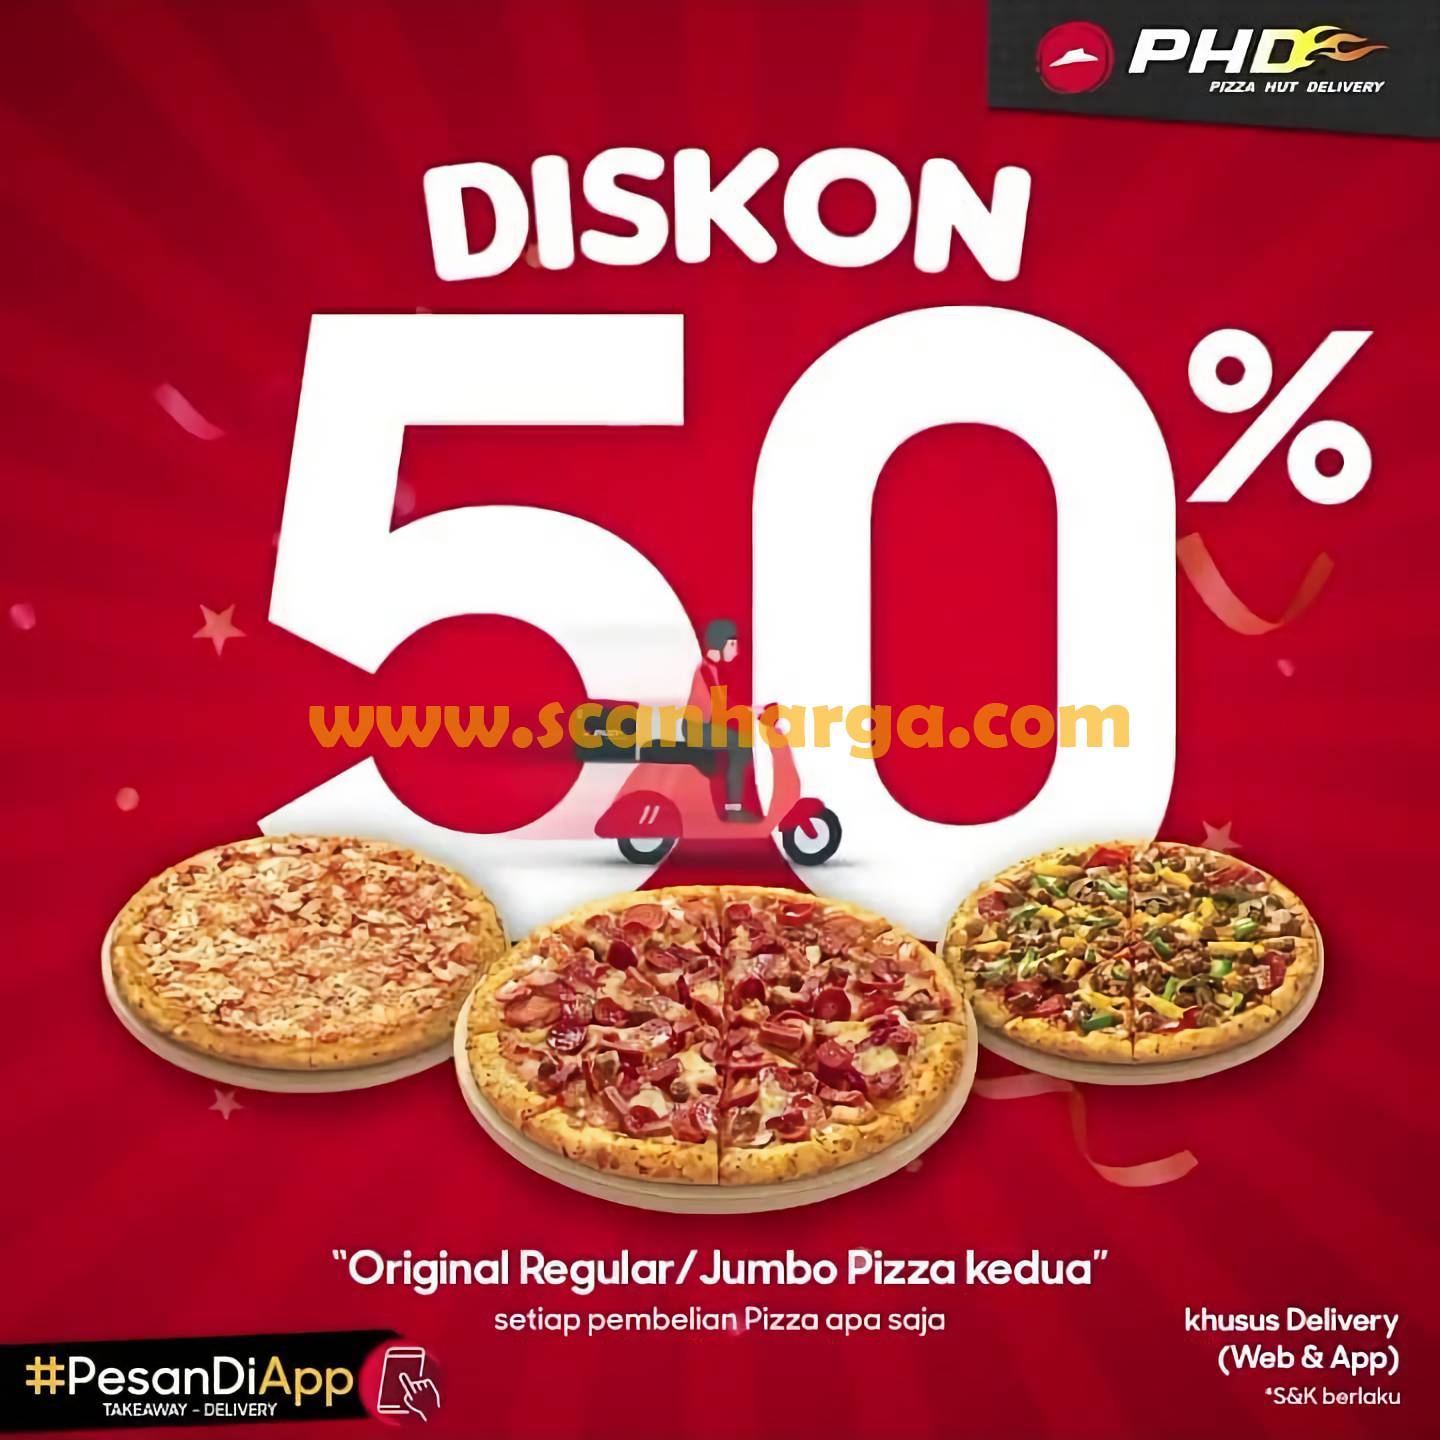 Promo Pizza Hut Delivery PHD Diskon 50% Pembelian Pizza Kedua Periode 14 - 30 September 2020